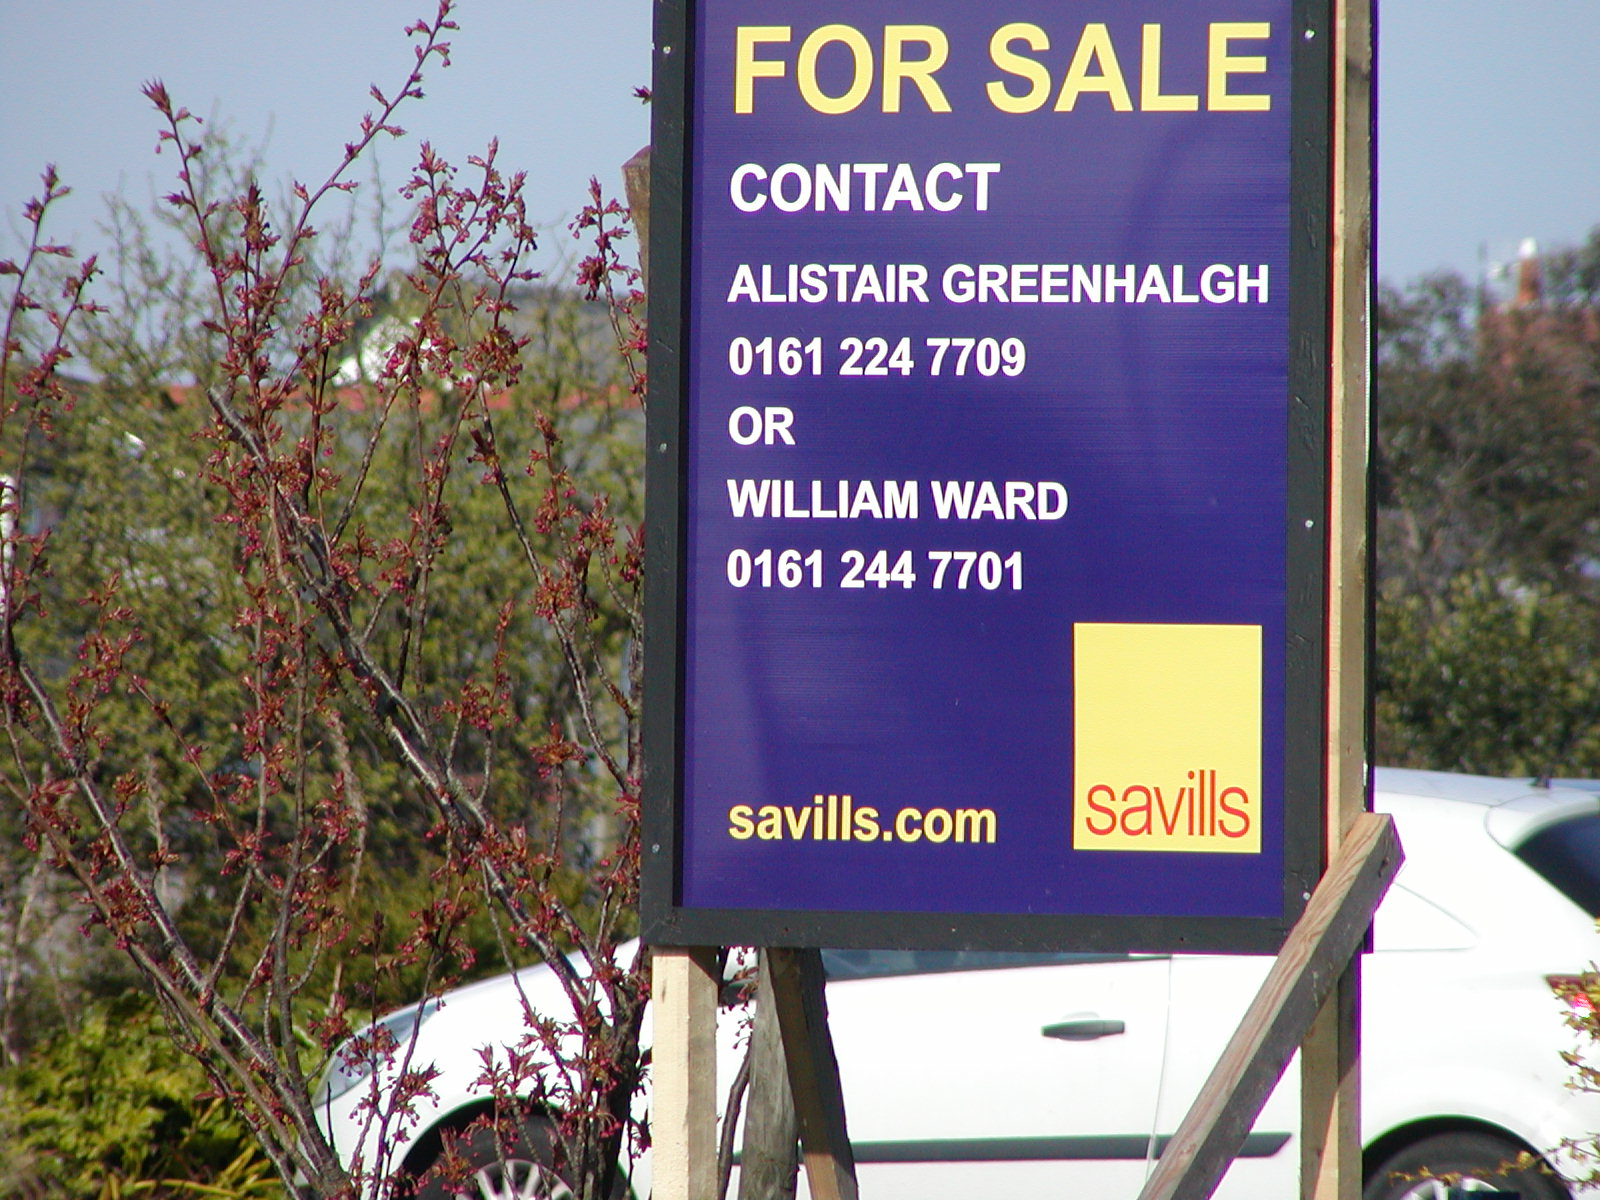 I keep looking at the Savills web site, but I haven't seen any adverts on it ...